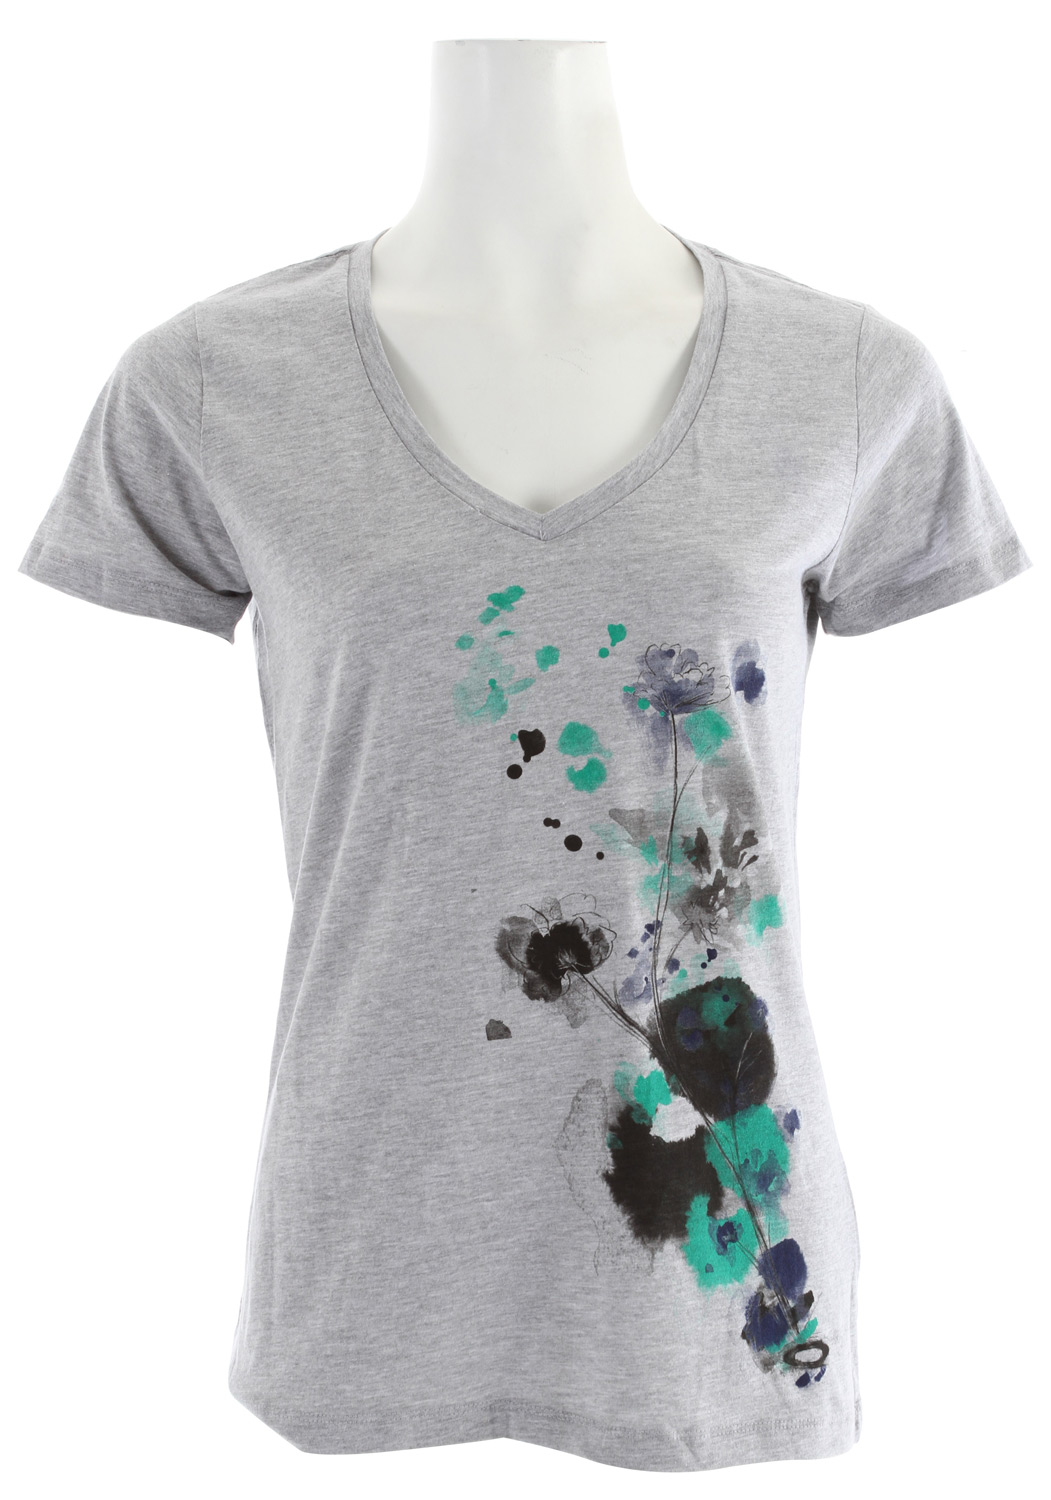 "Key Features of The Oakley Watercolor T-Shirt: Regular Fit Crew Neck Short Sleeve Short sleeve v-neck graphic with 3-color screen print graphic 26.5"" hps 100% Cotton - $16.95"